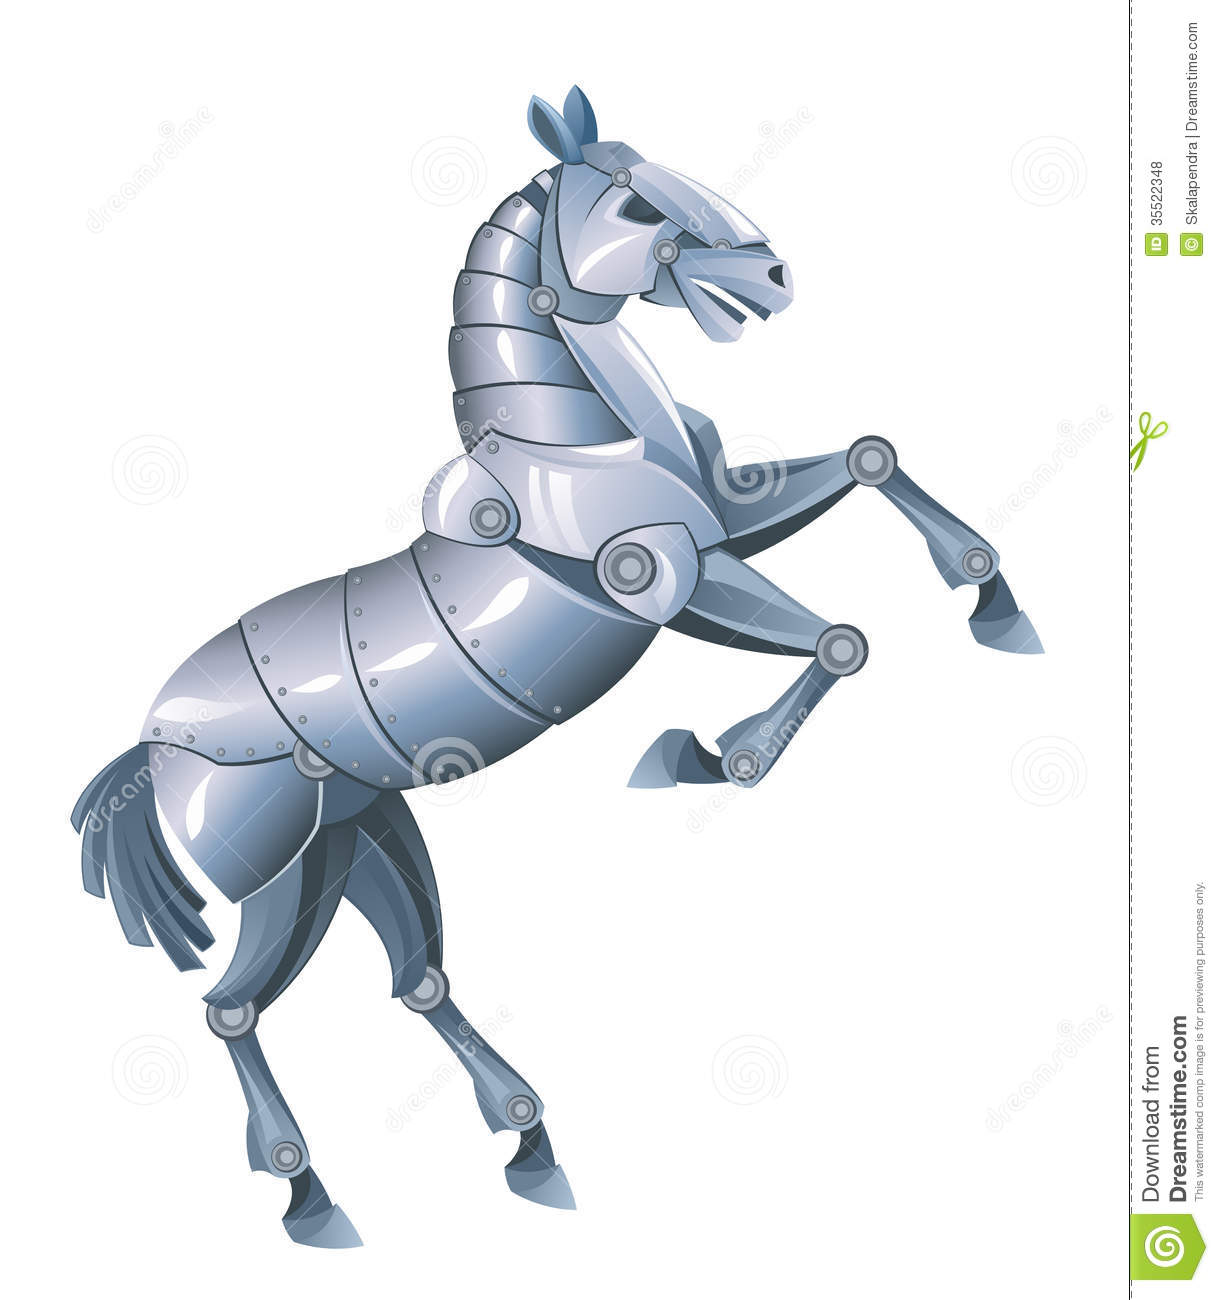 robot steed royalty free stock photos image 35522348 horse clipart pictures horse clipart pictures